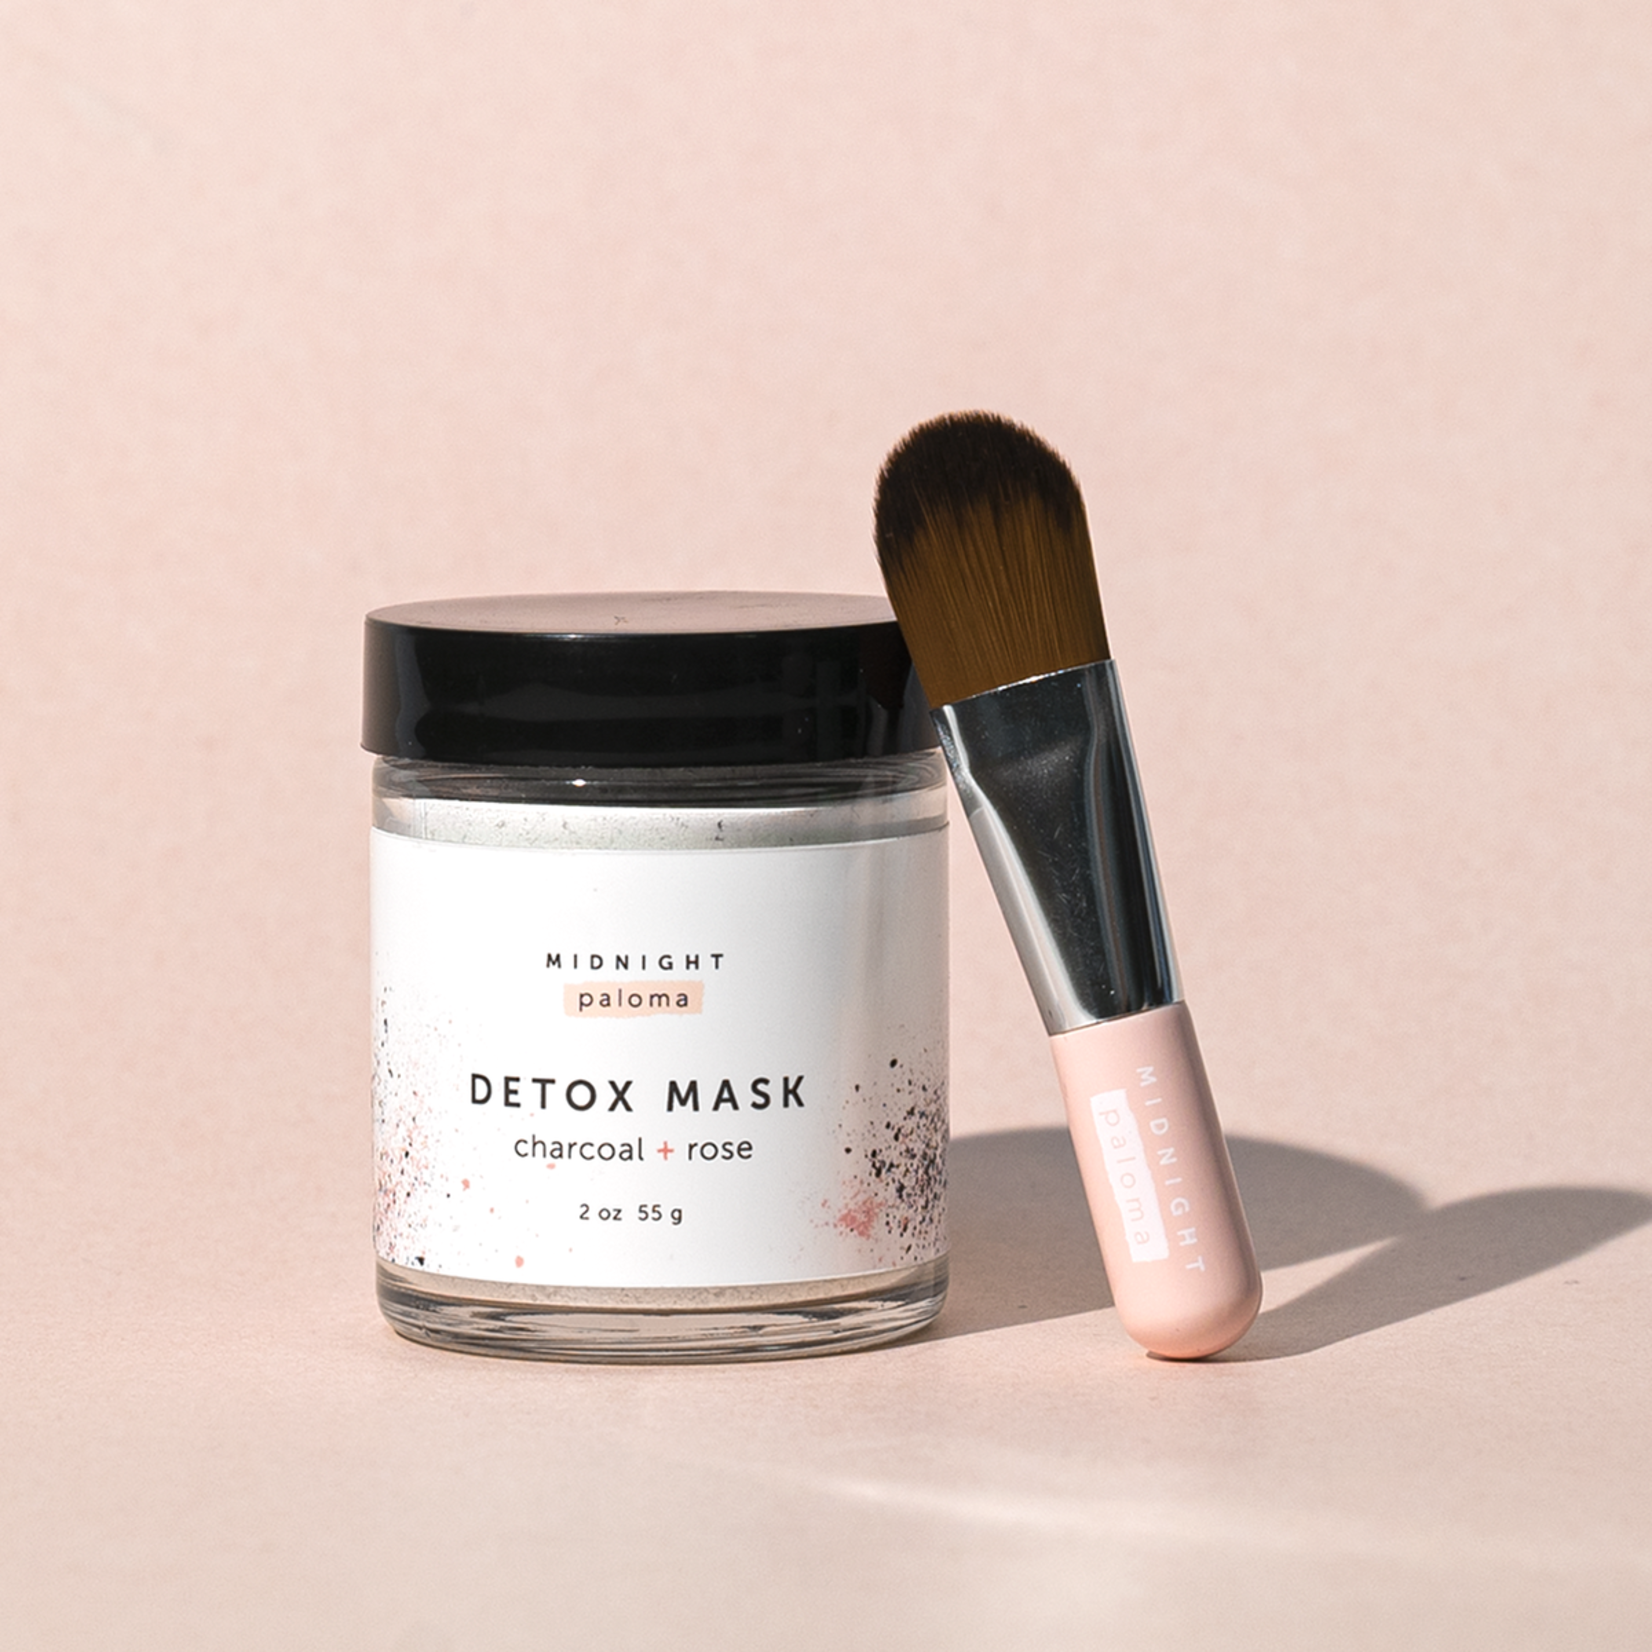 Midnight Paloma Detox Mask Charcoal + Rose 55g